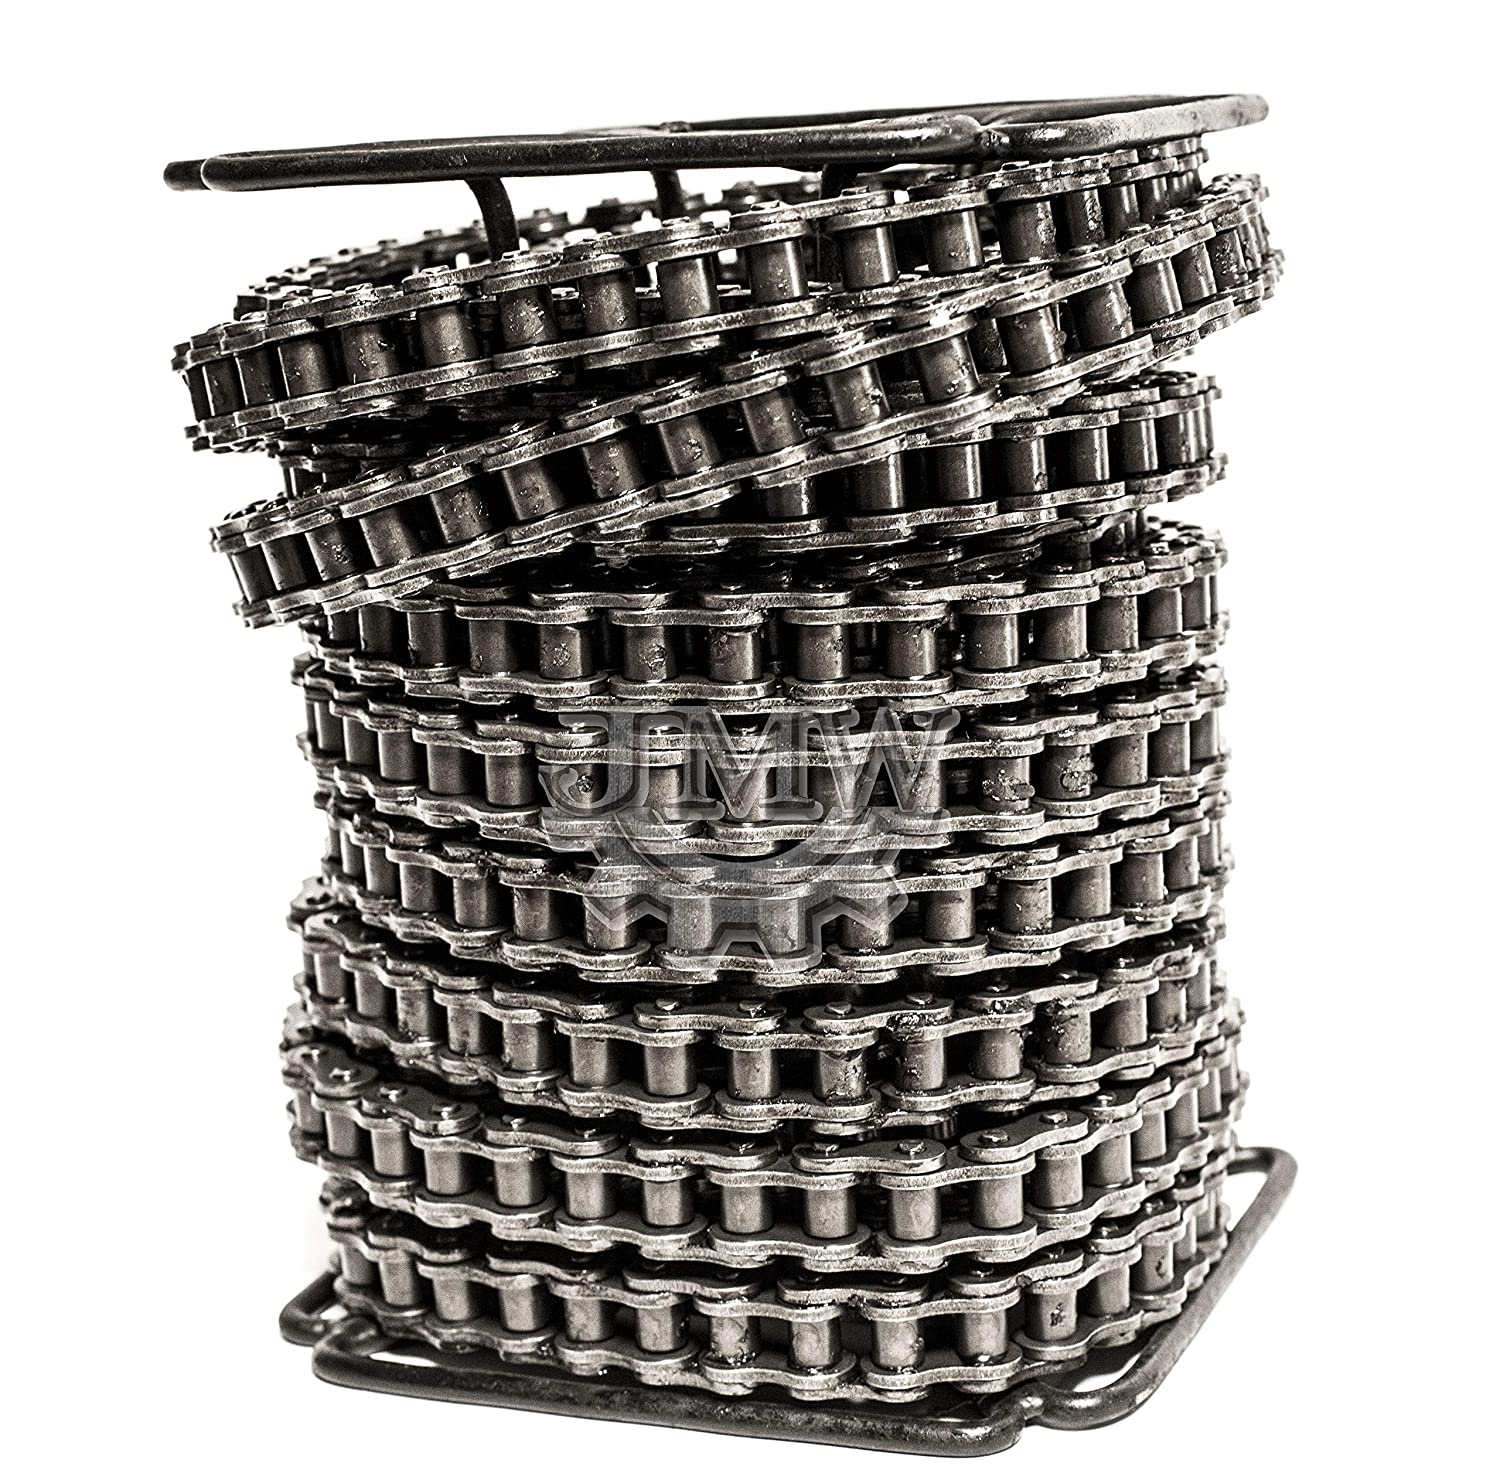 Jeremywell 60 Roller Chain 100 Feet with 10 Connecting Links